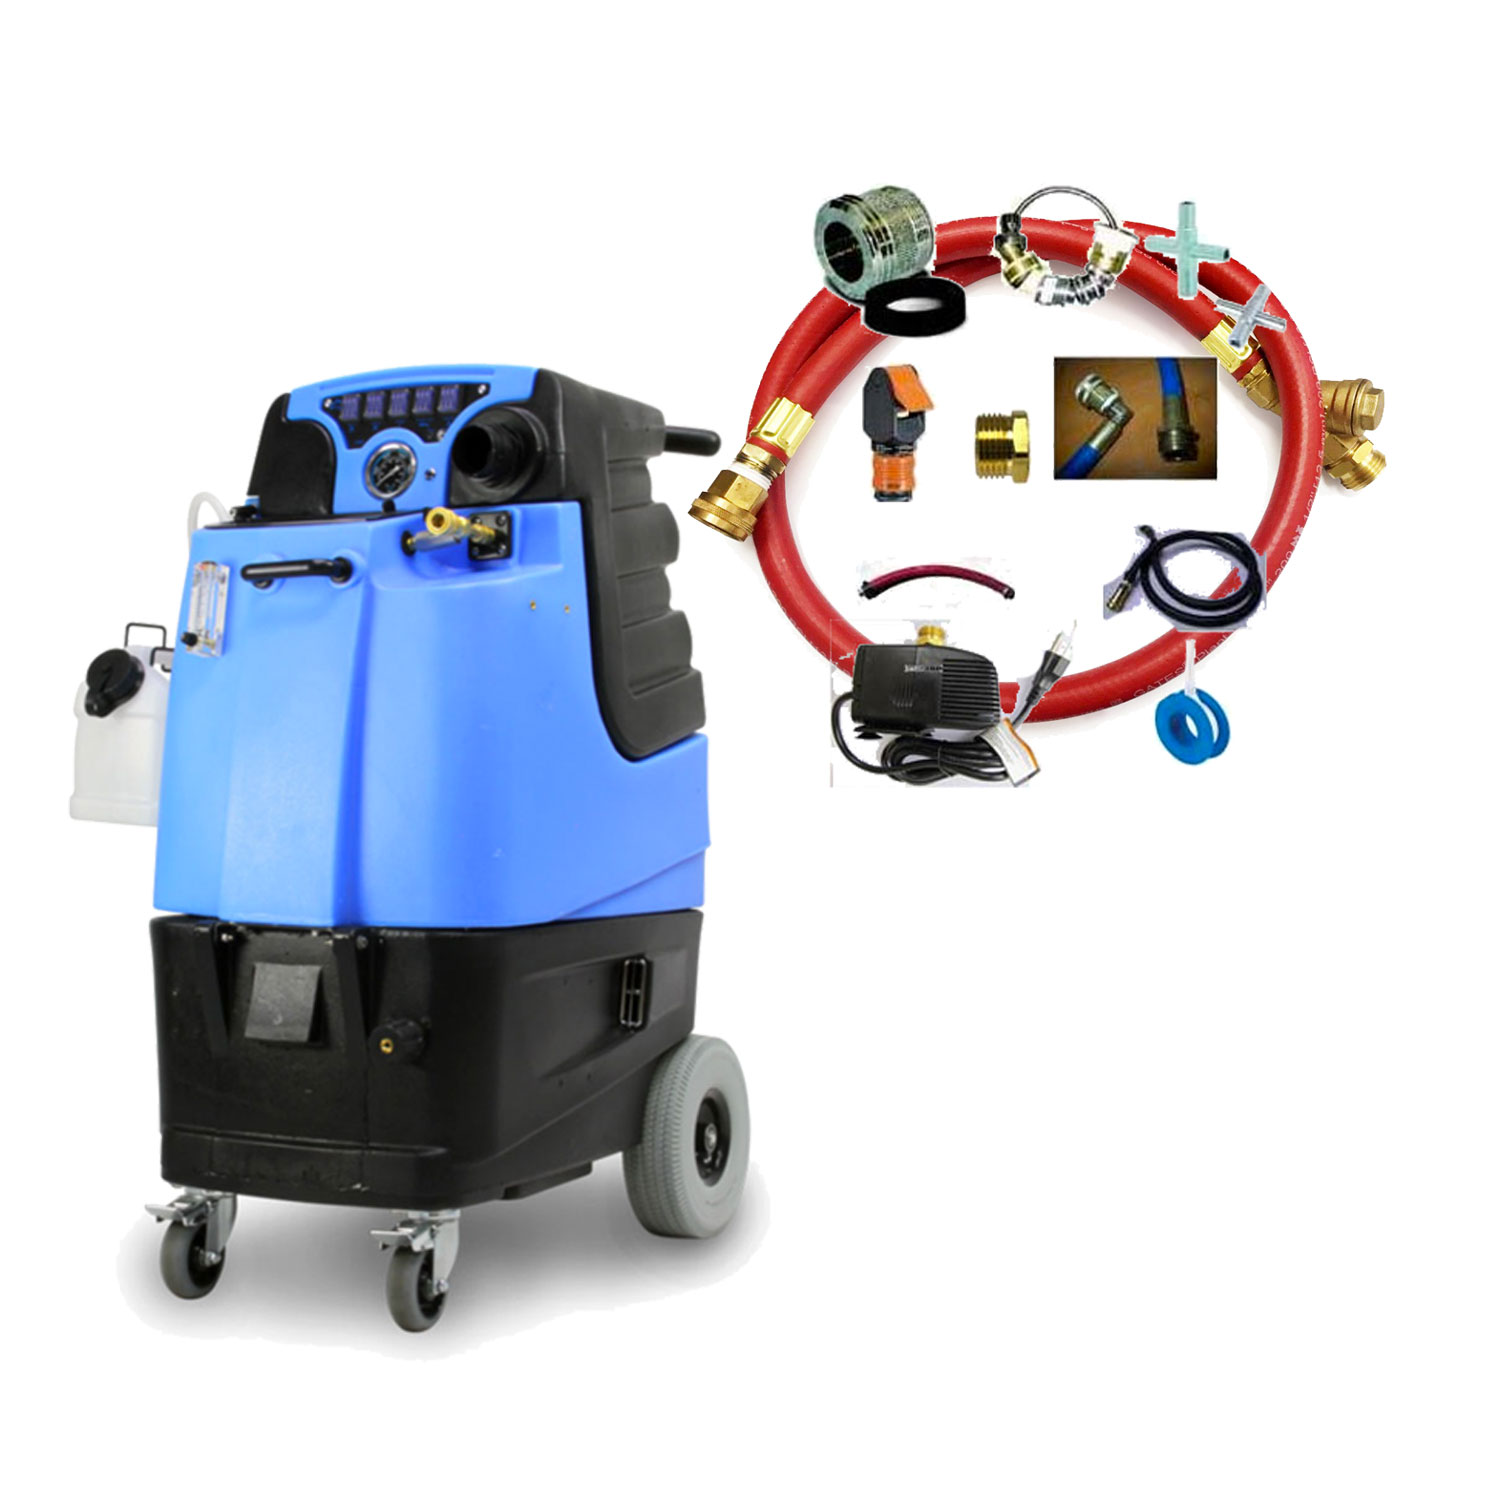 Mytee LTD3LX 500Psi HEATED Dual 6.6 Vac AFAD Kit Carpet Cleaning Machine LTD3-LX Speedster Extractor Freight Inc Bundle 54167451